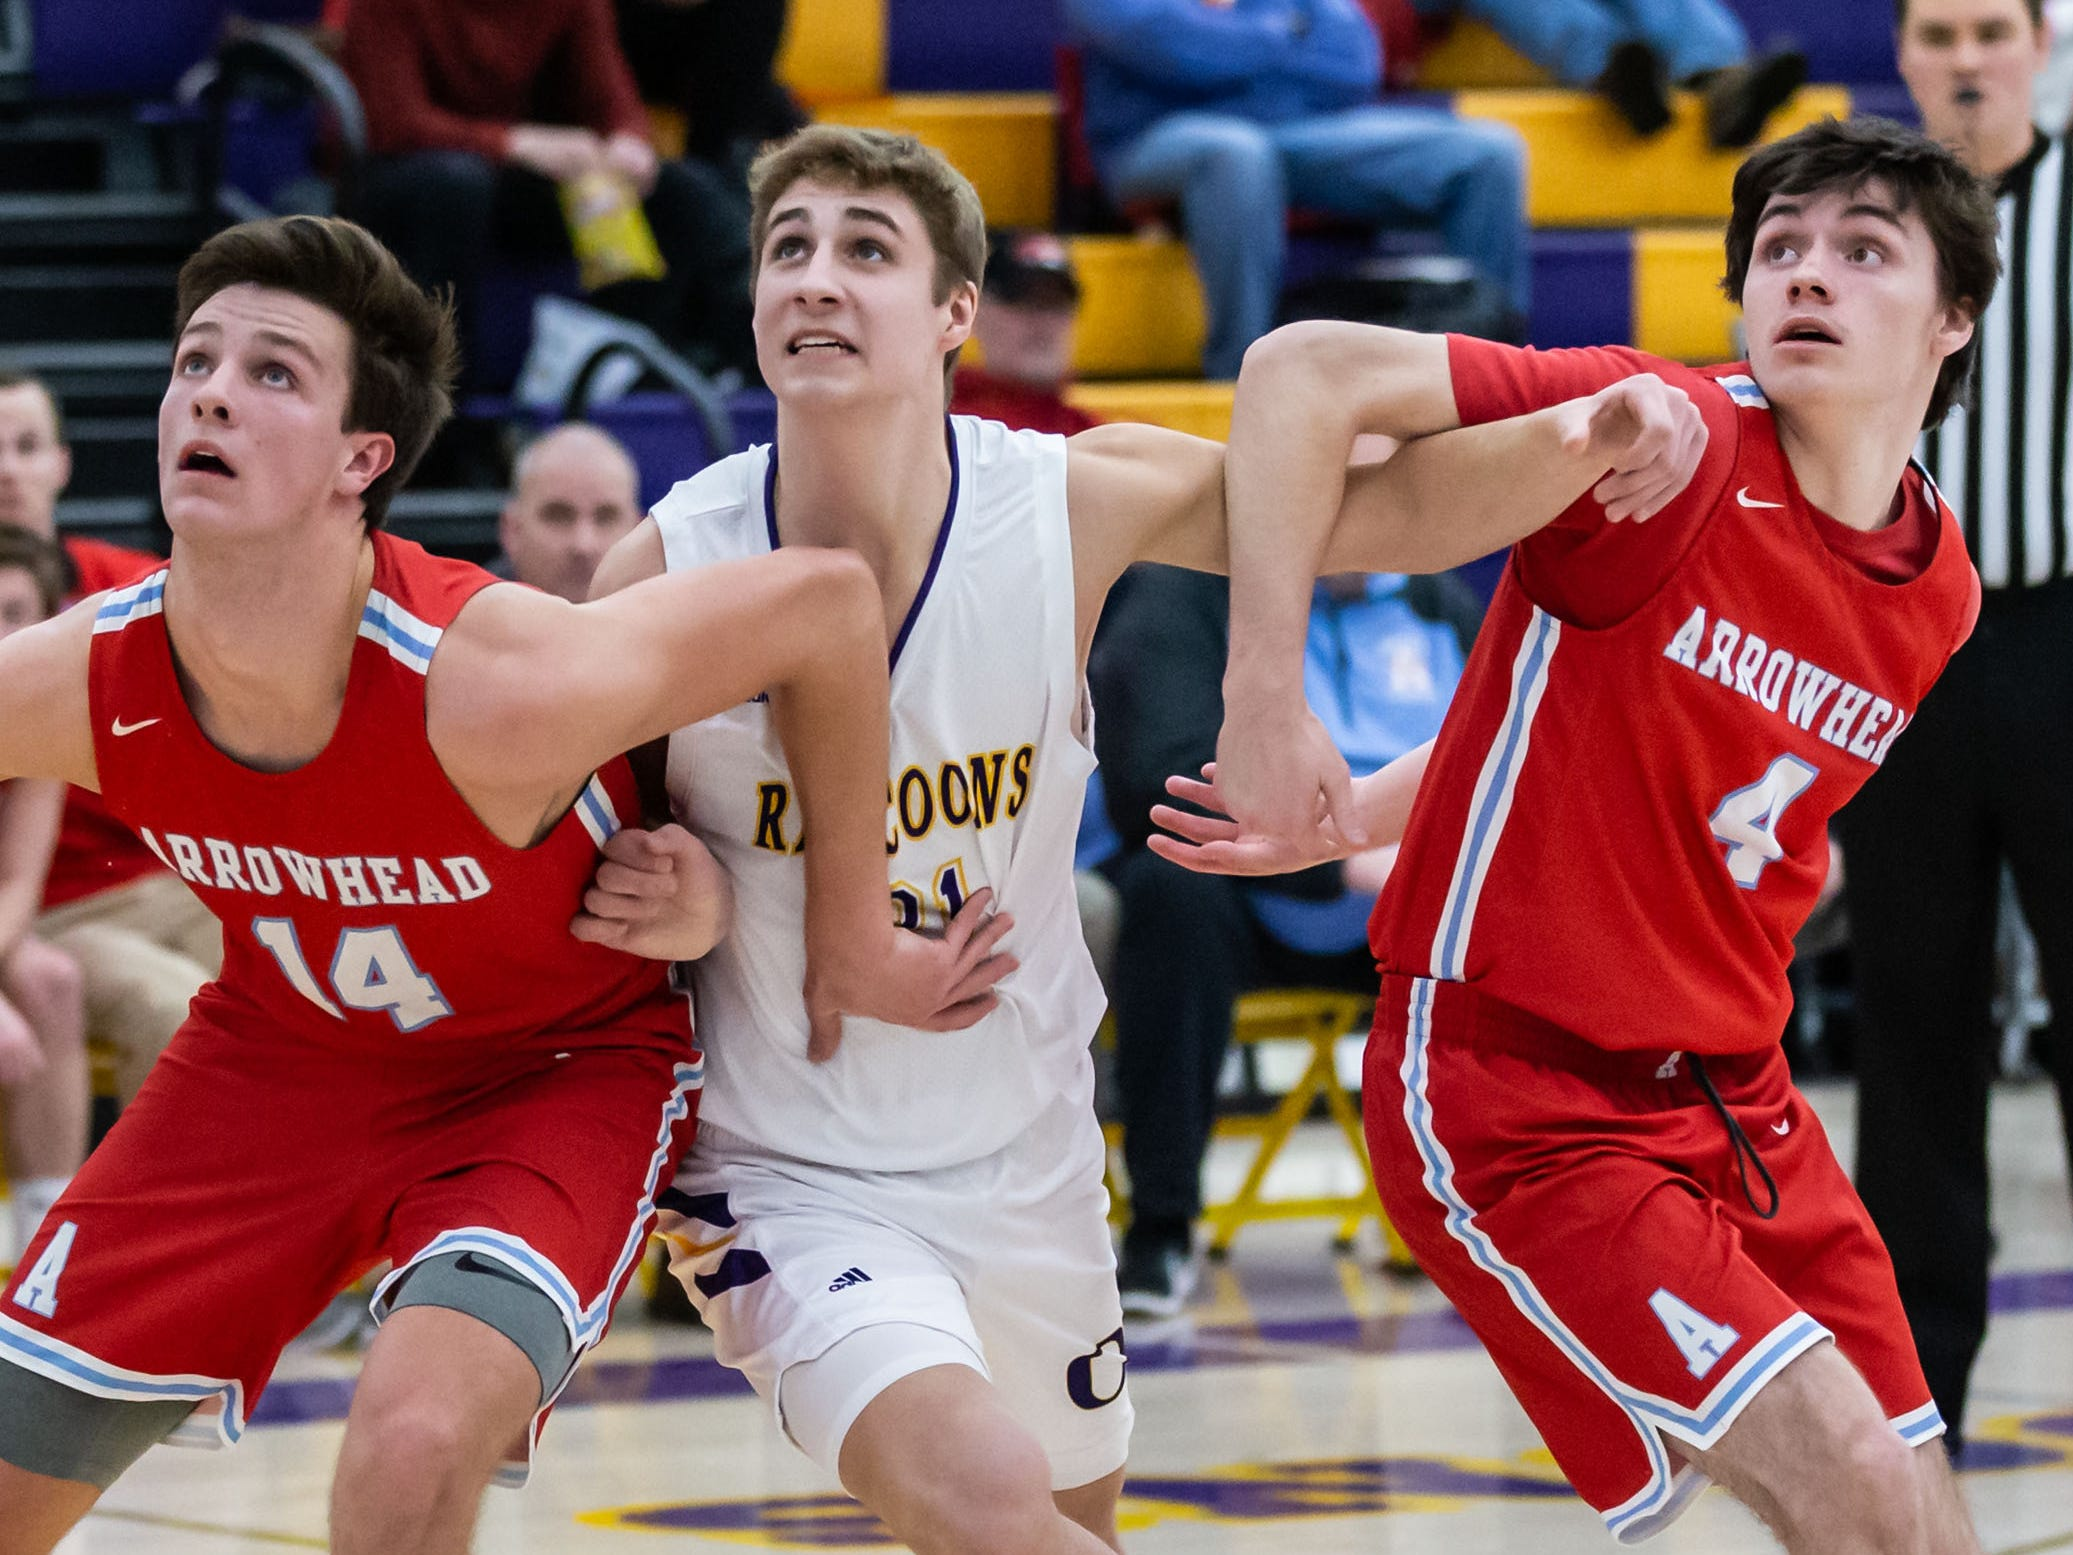 Oconomowoc's Sam Rott (center) gets boxed out by Arrowhead's Carter Gilmore (14) and Chris Burg (4) during the game at Oconomowoc on Tuesday, Jan. 29, 2019.